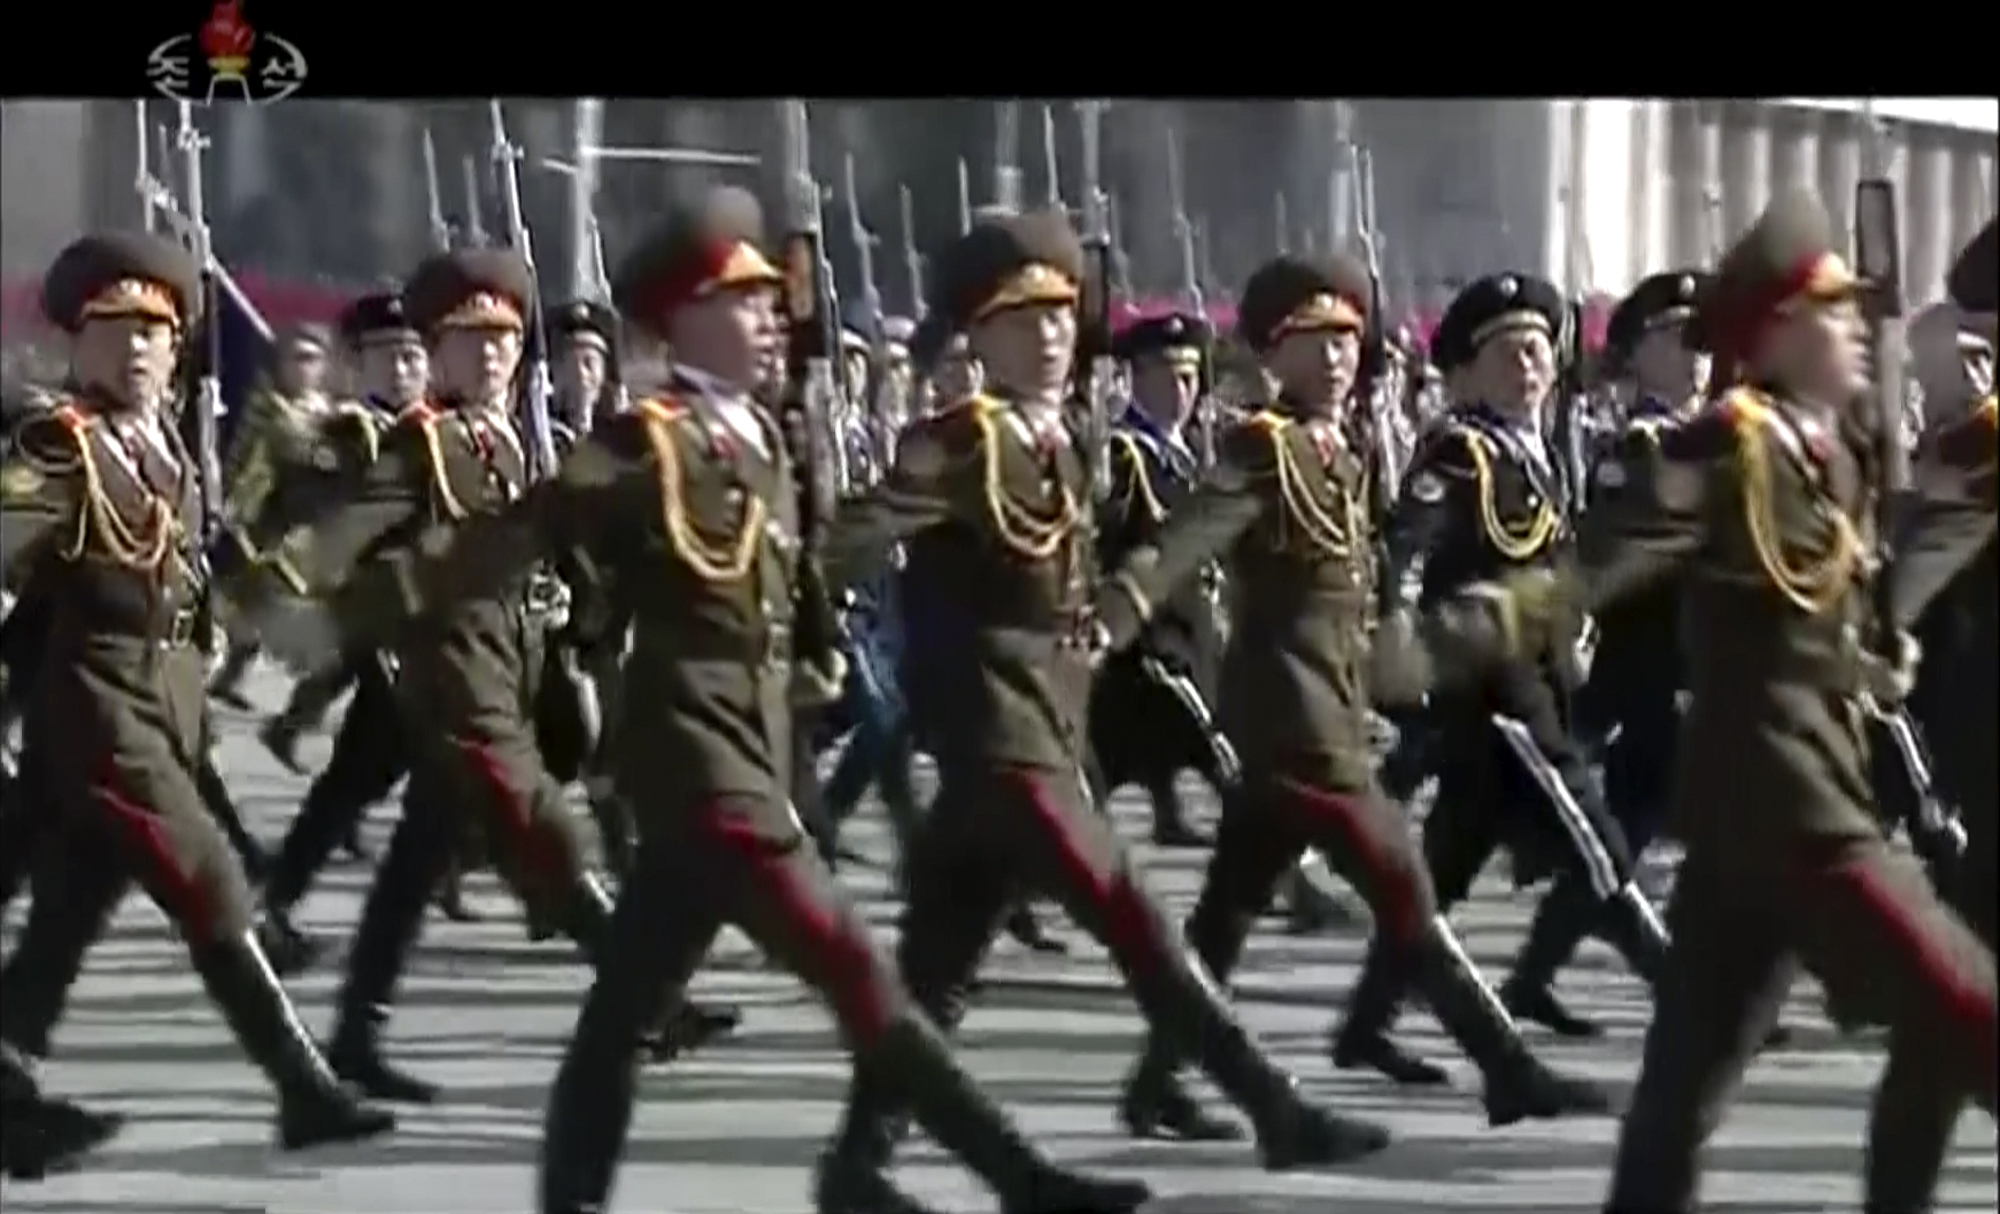 North Korean soldiers march during the parade in Pyongyang (KRT via AP)